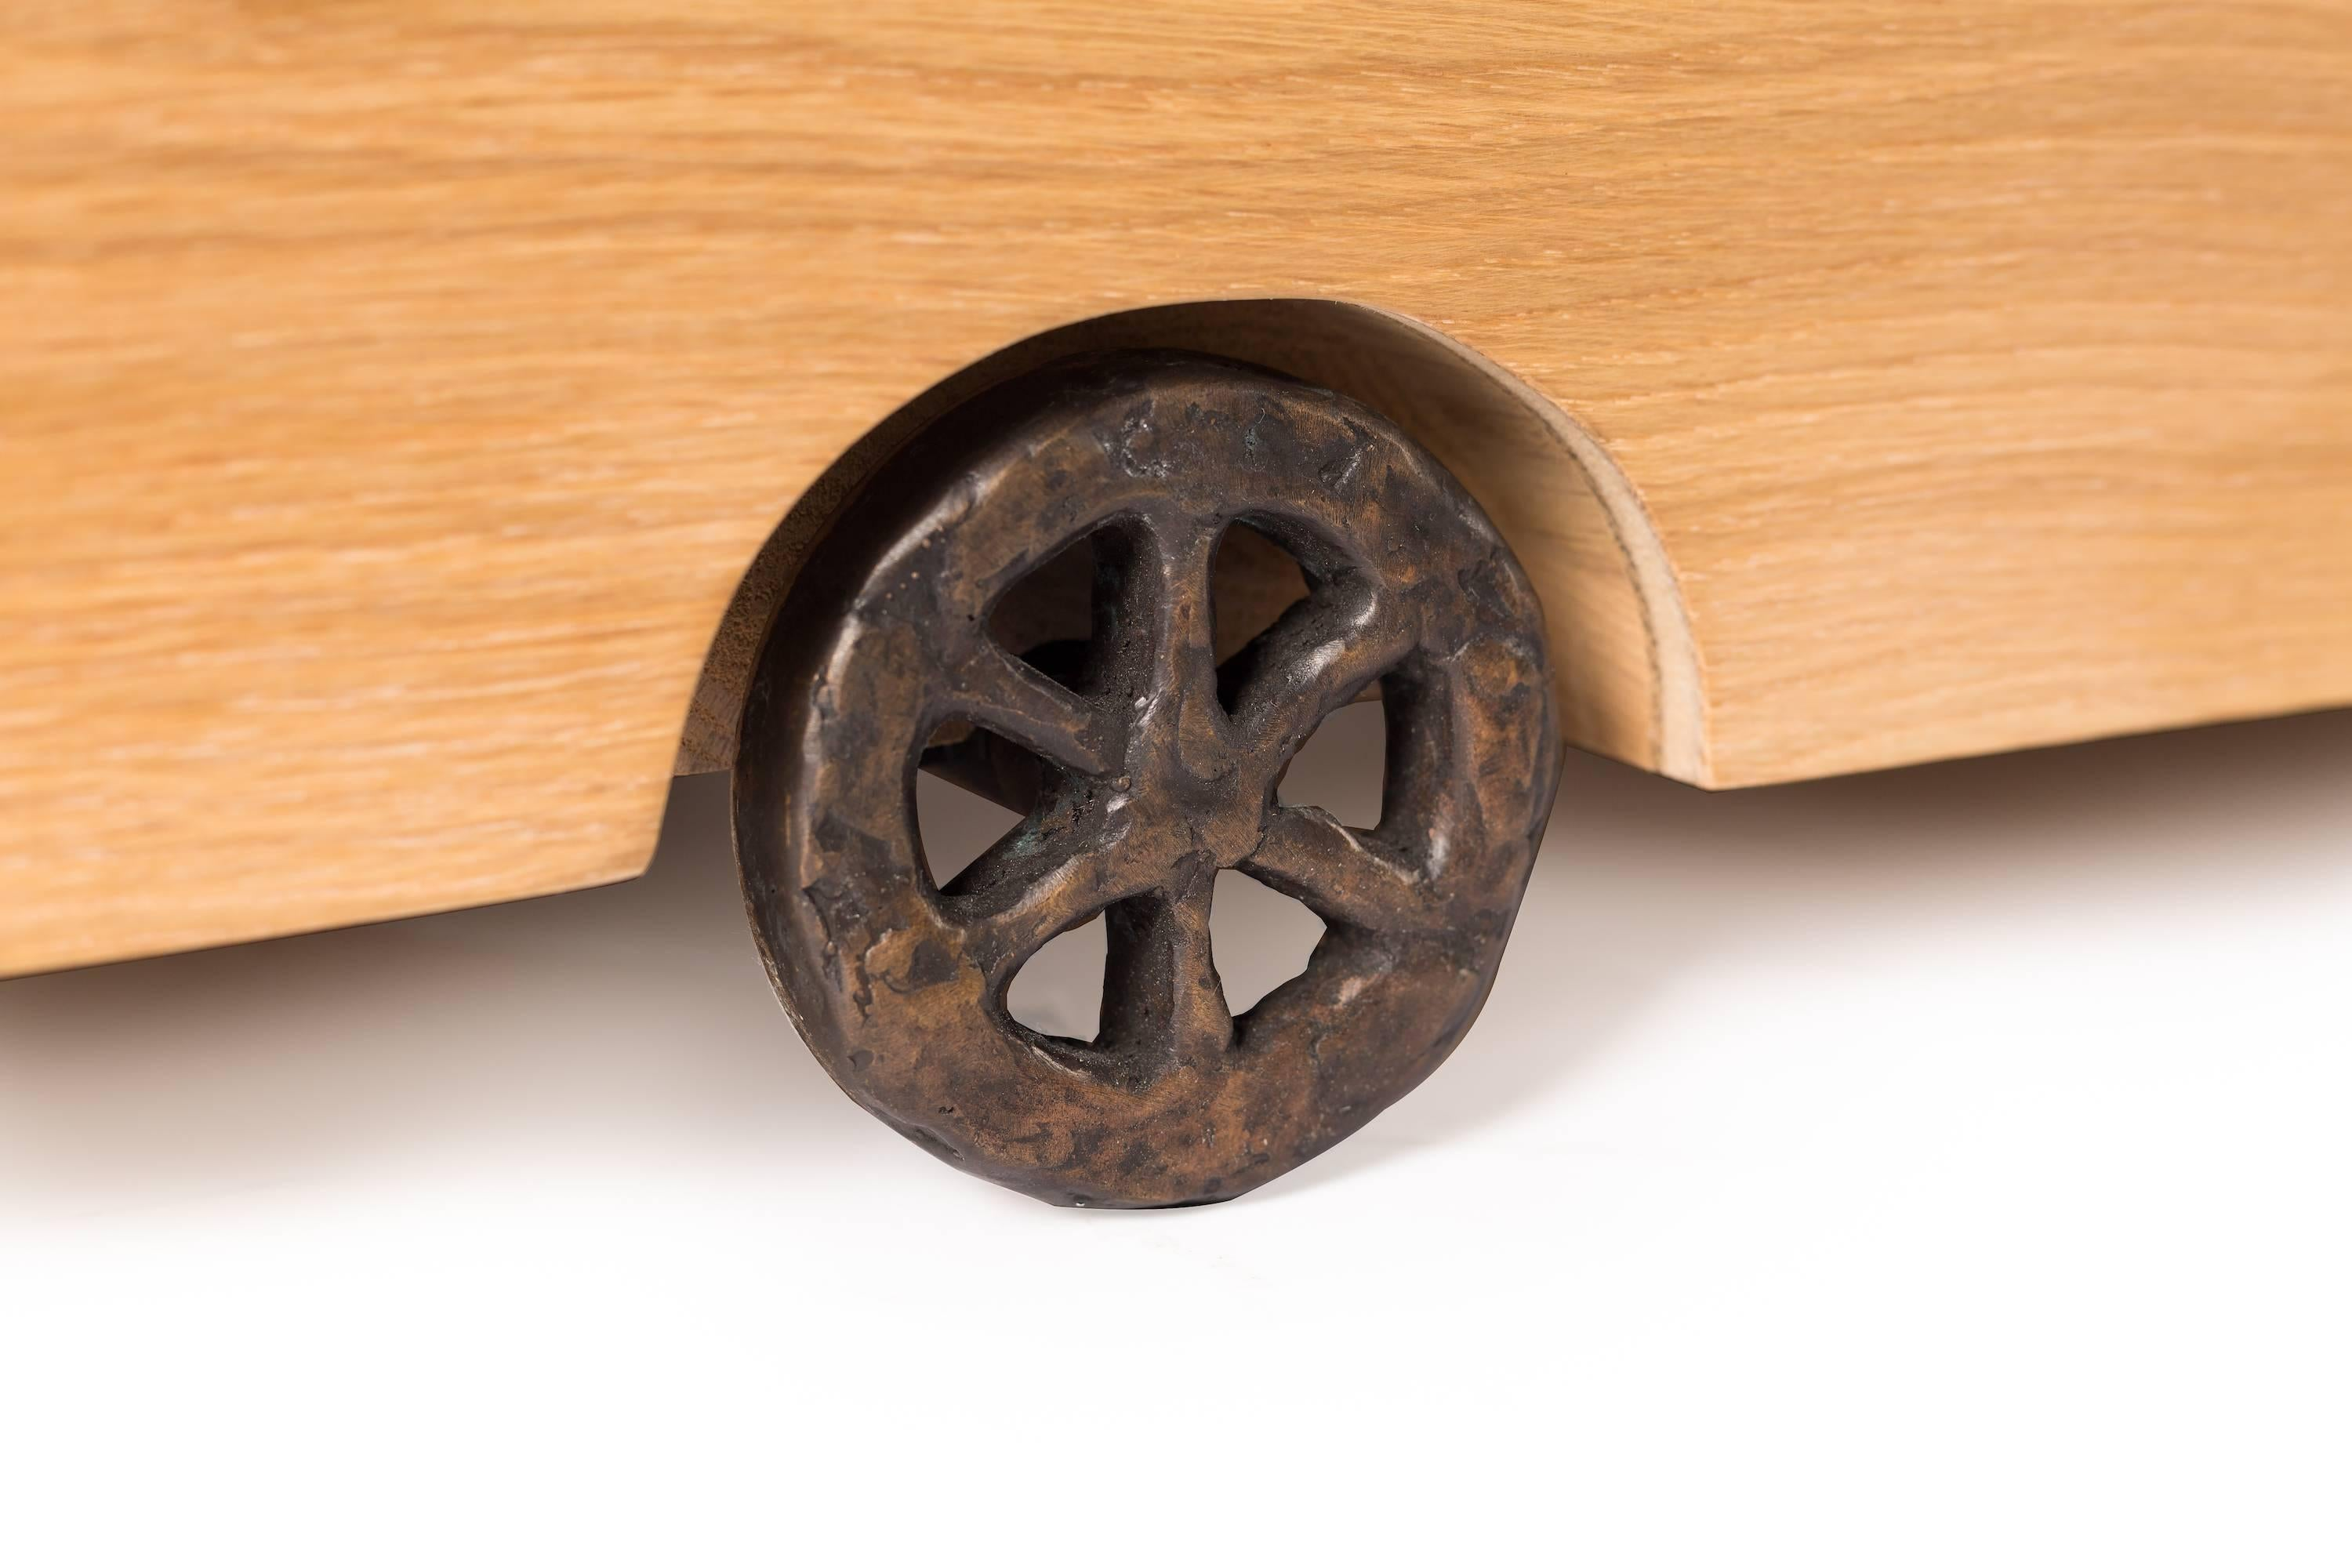 Moooi Turbo Table Low By Maarten Baas In Natural Oiled Oak With Bronze  Wheels For Sale At 1stdibs